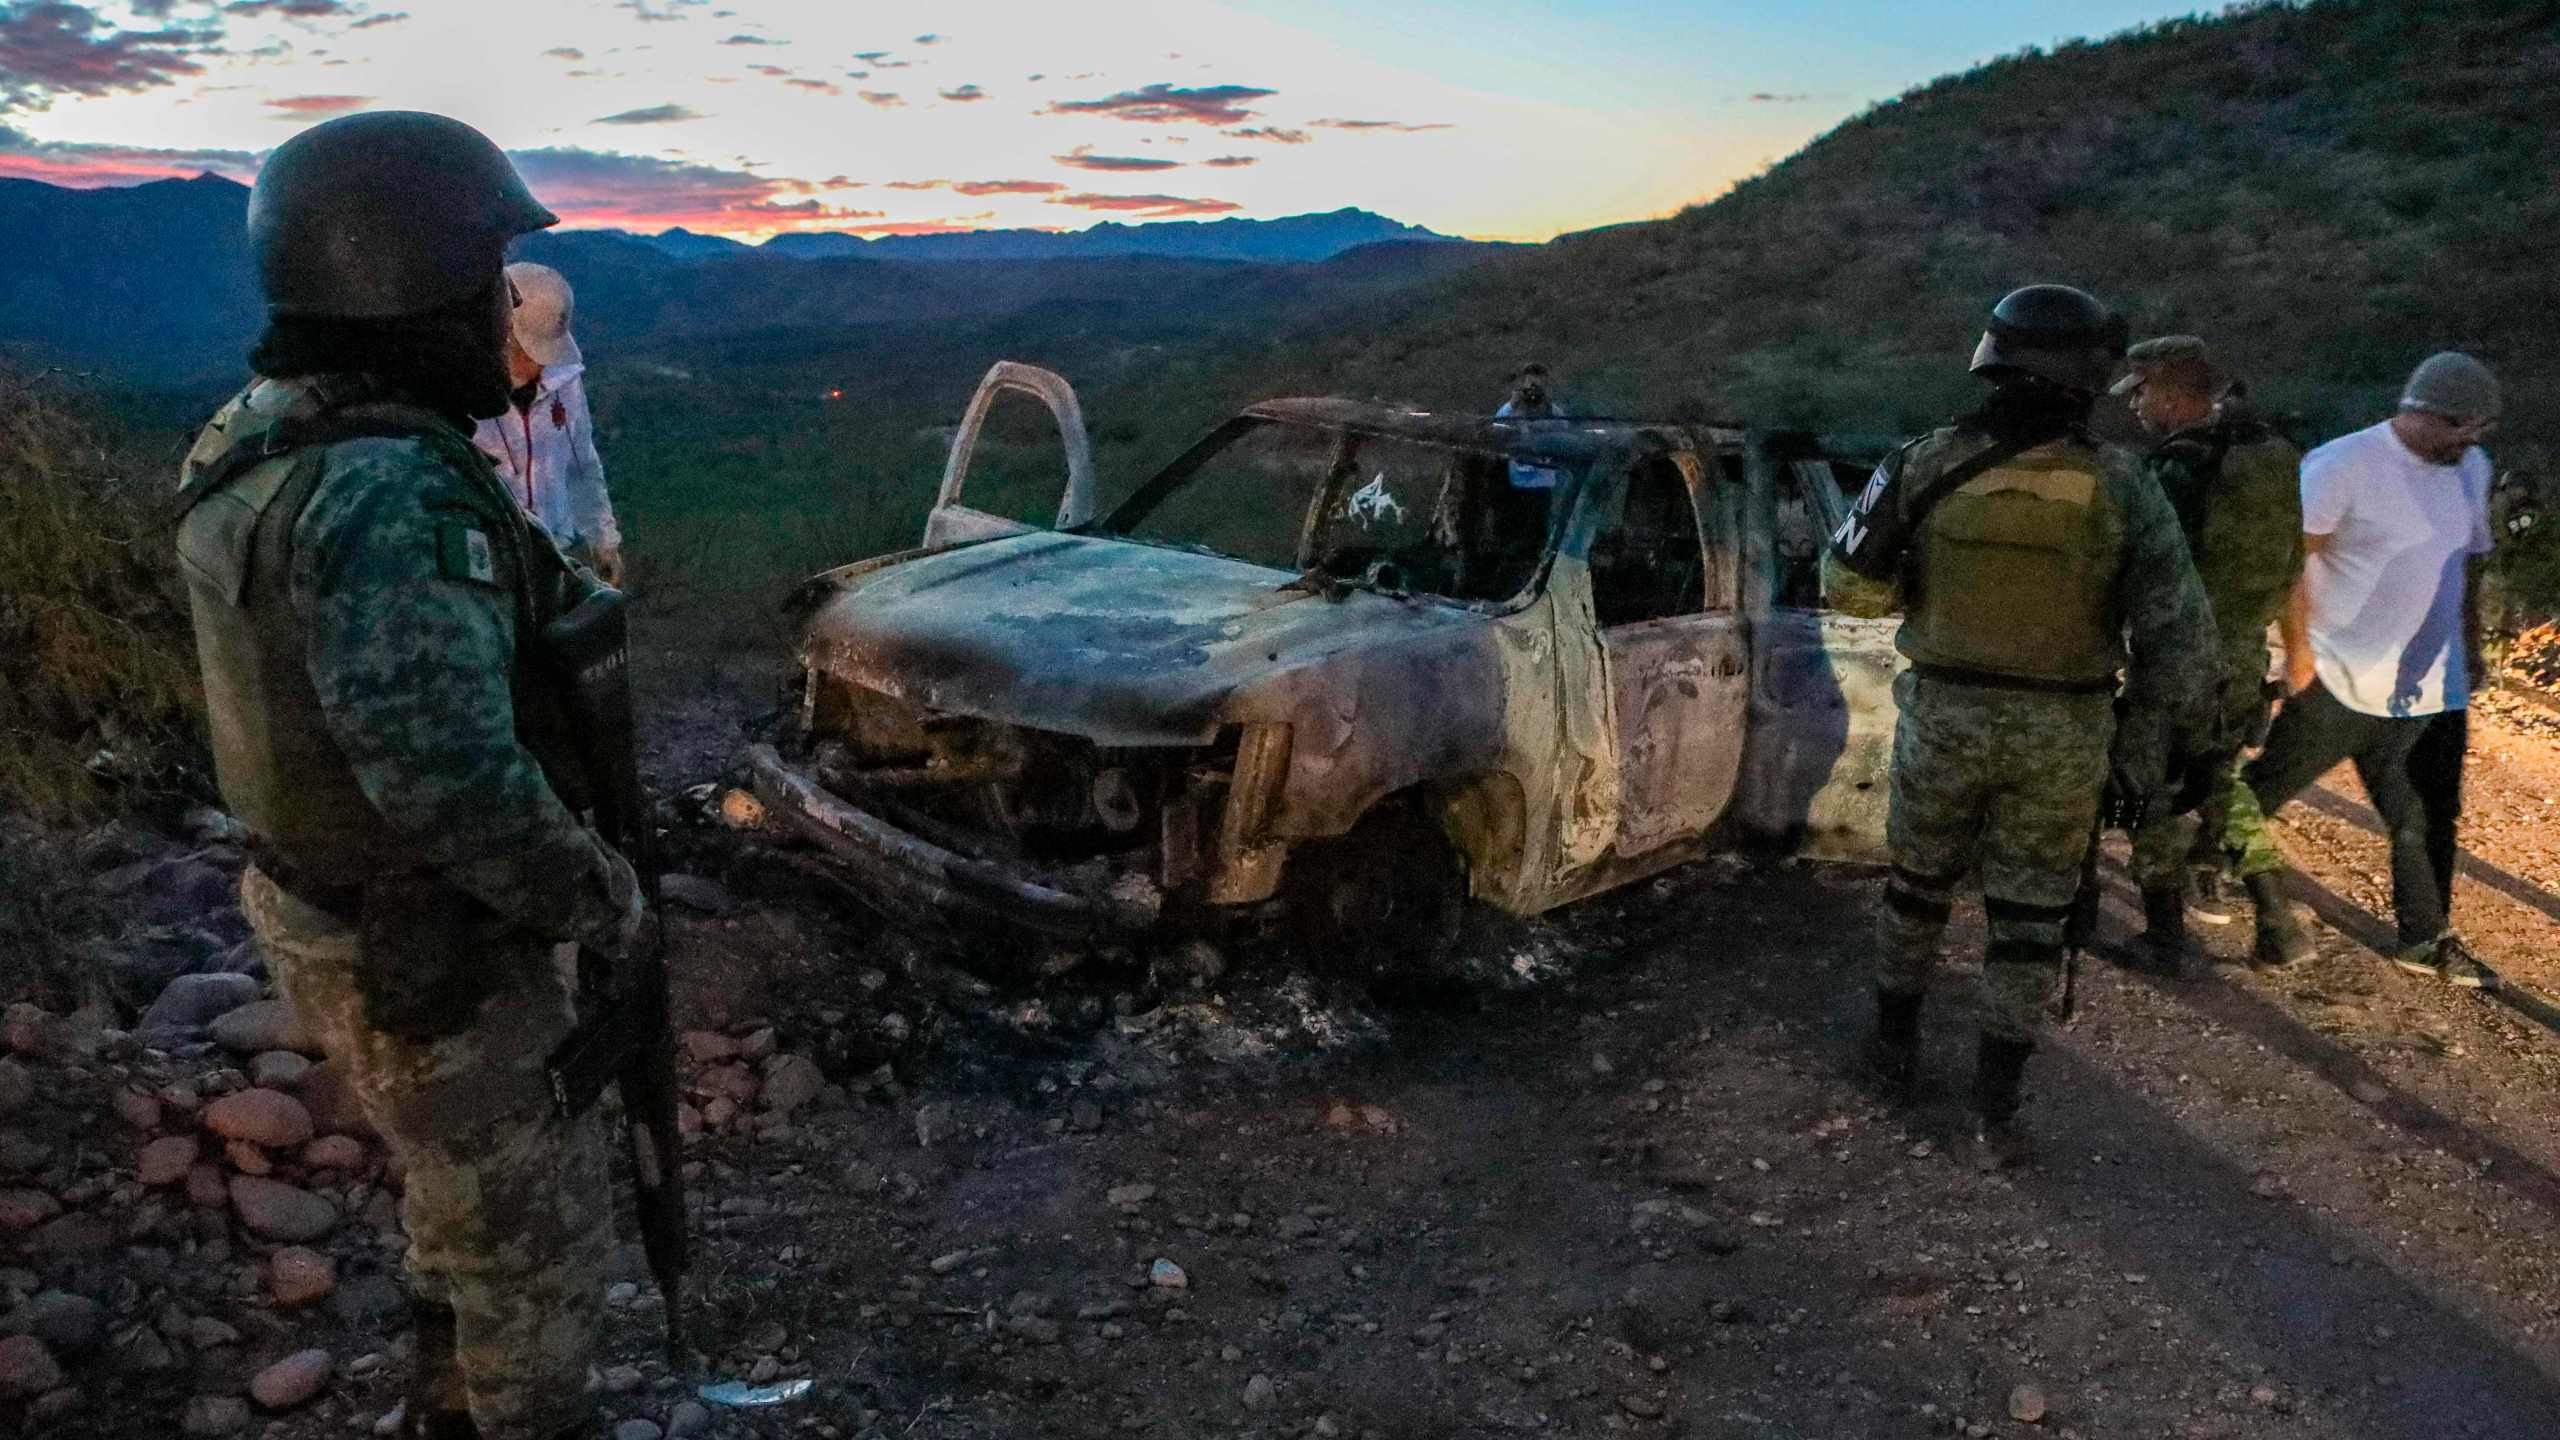 People stand near the burned car where members of the LeBaron family were killed and burned during an ambush in Bavispe, Sonora mountains, Mexico, on Nov. 5, 2019. (Credit: Herika Martinez / AFP / Getty Images)